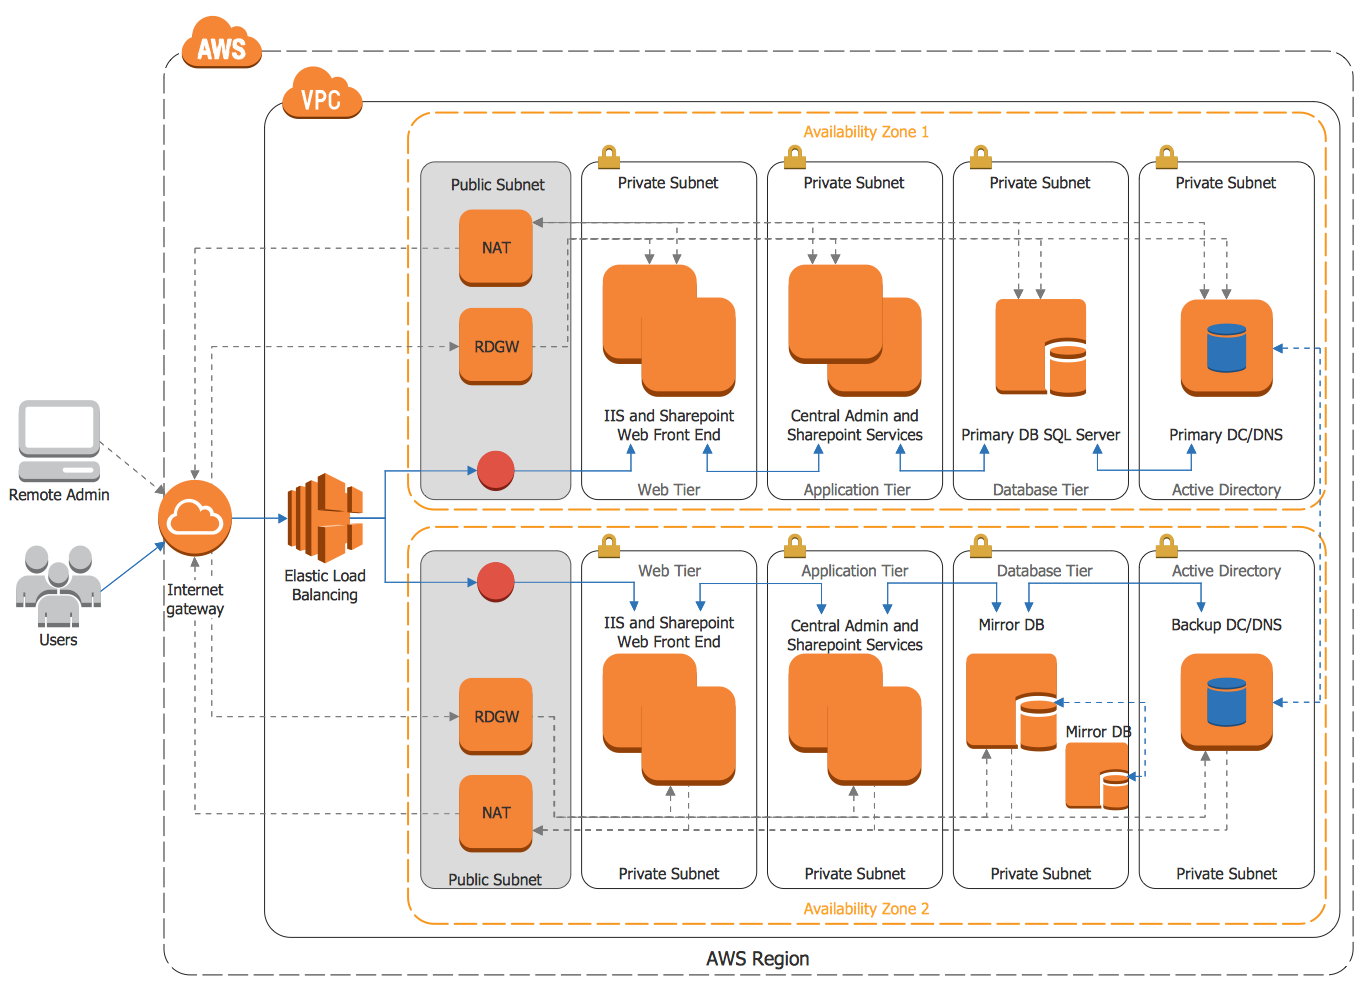 AWS Architecture Diagrams Solution | ConceptDraw.com